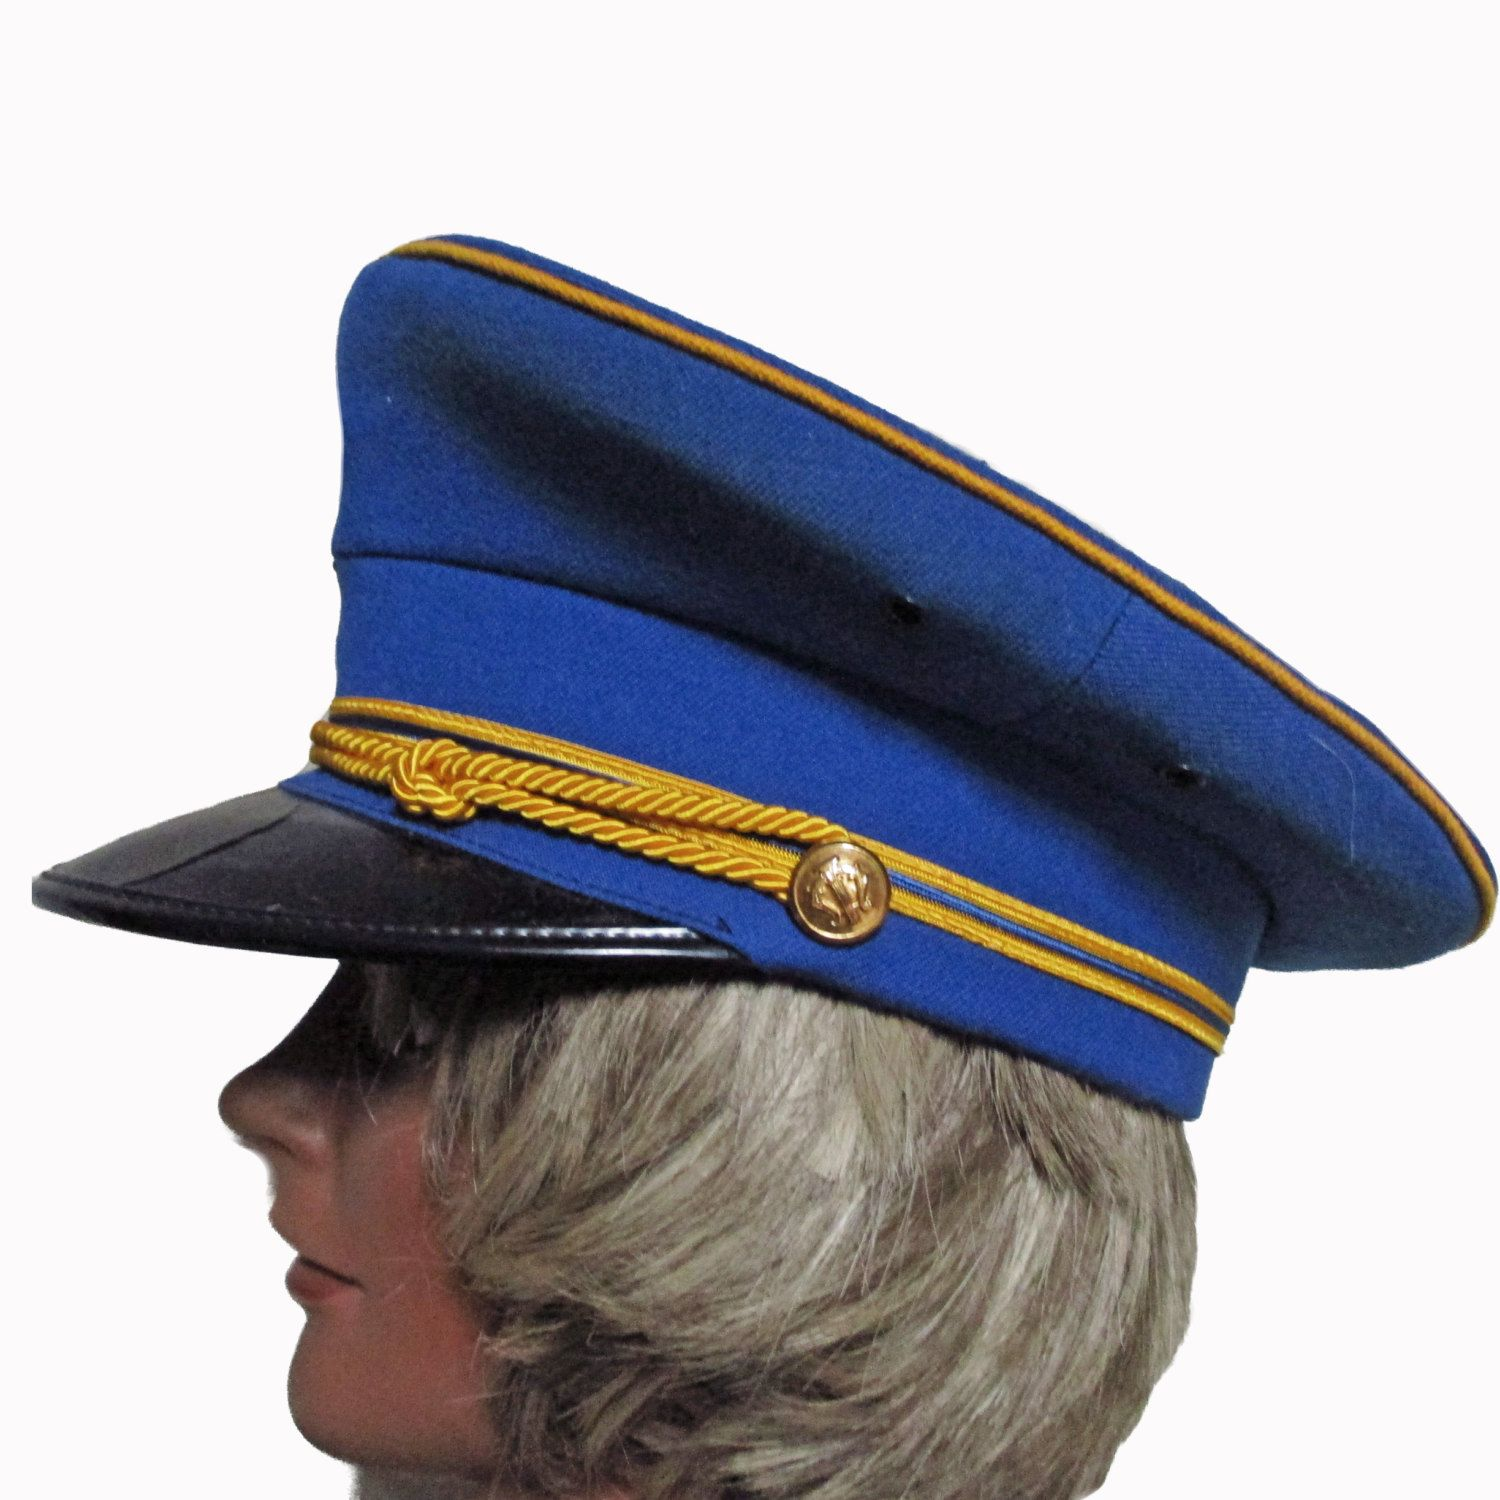 Vintage Marching Band Hat - 50s Military Uniform Hat ...